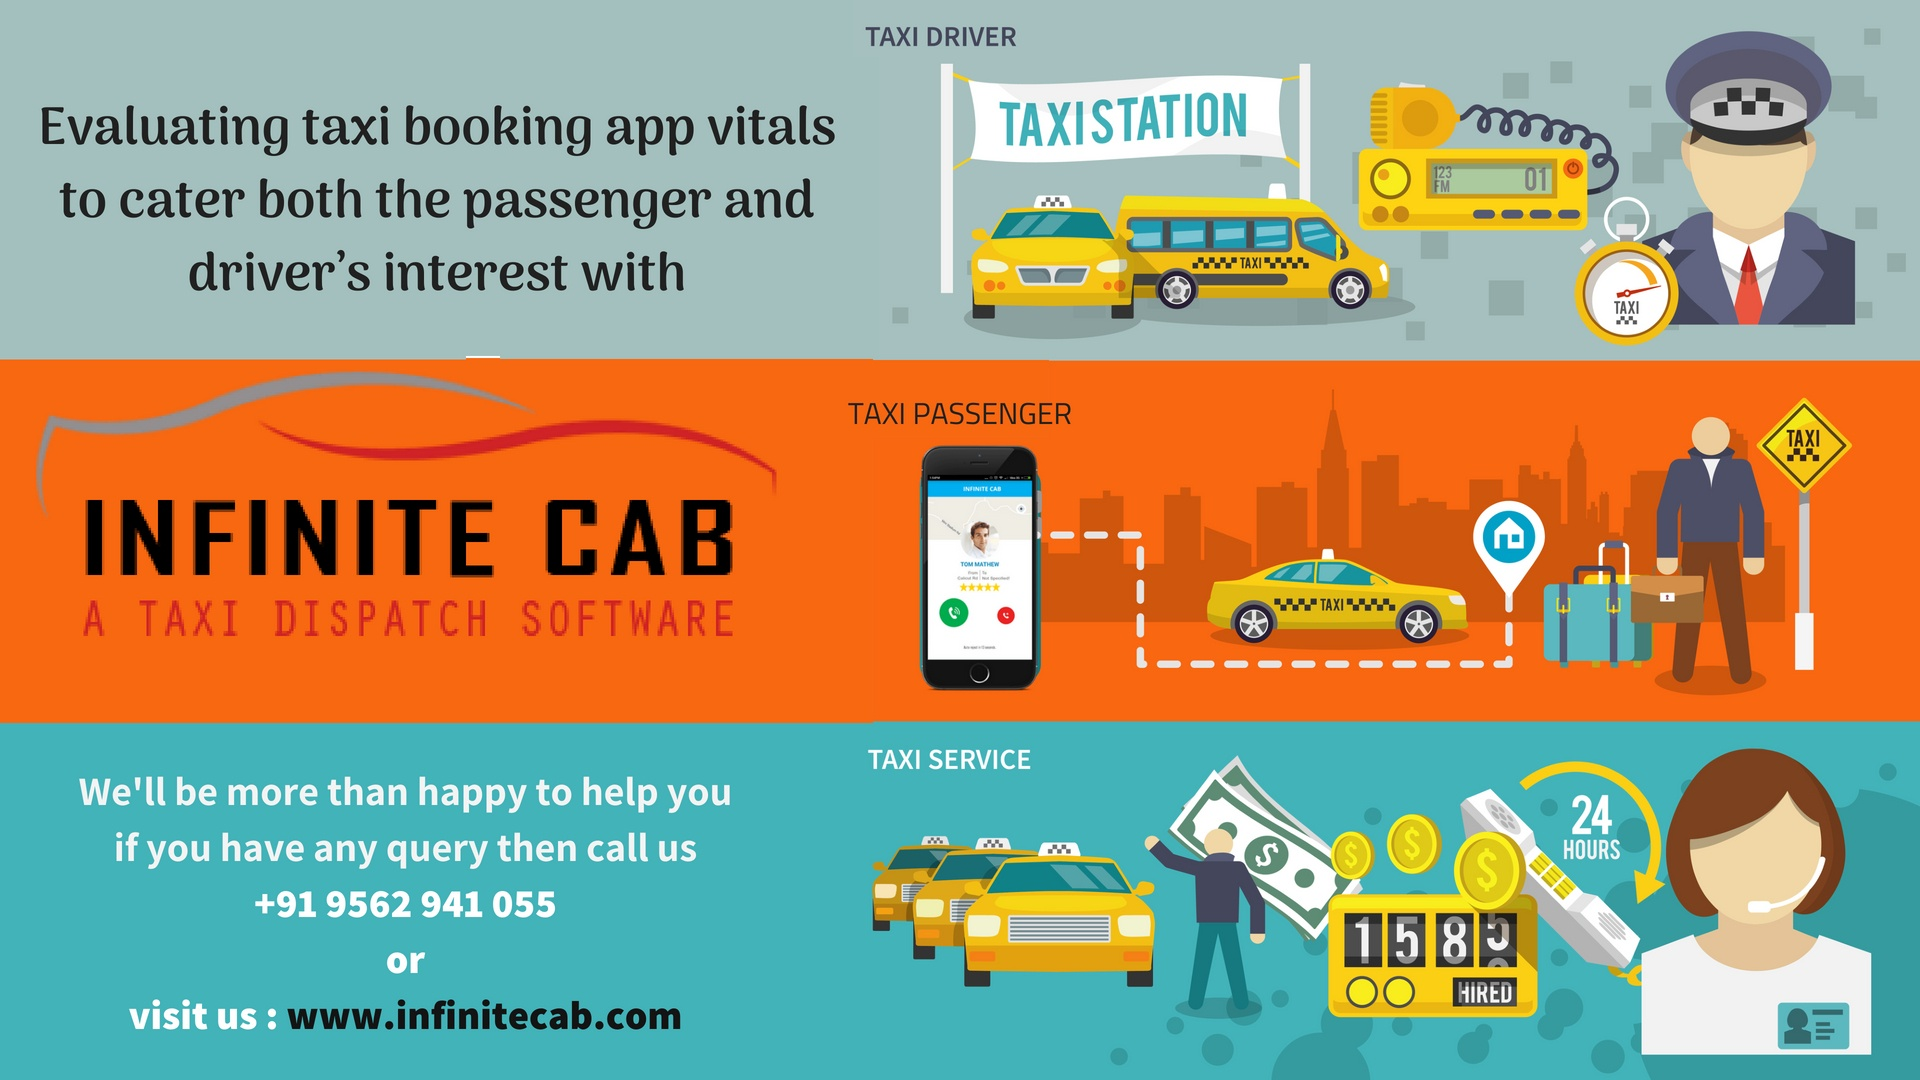 What is the setup fee for a cab management system? - Quora